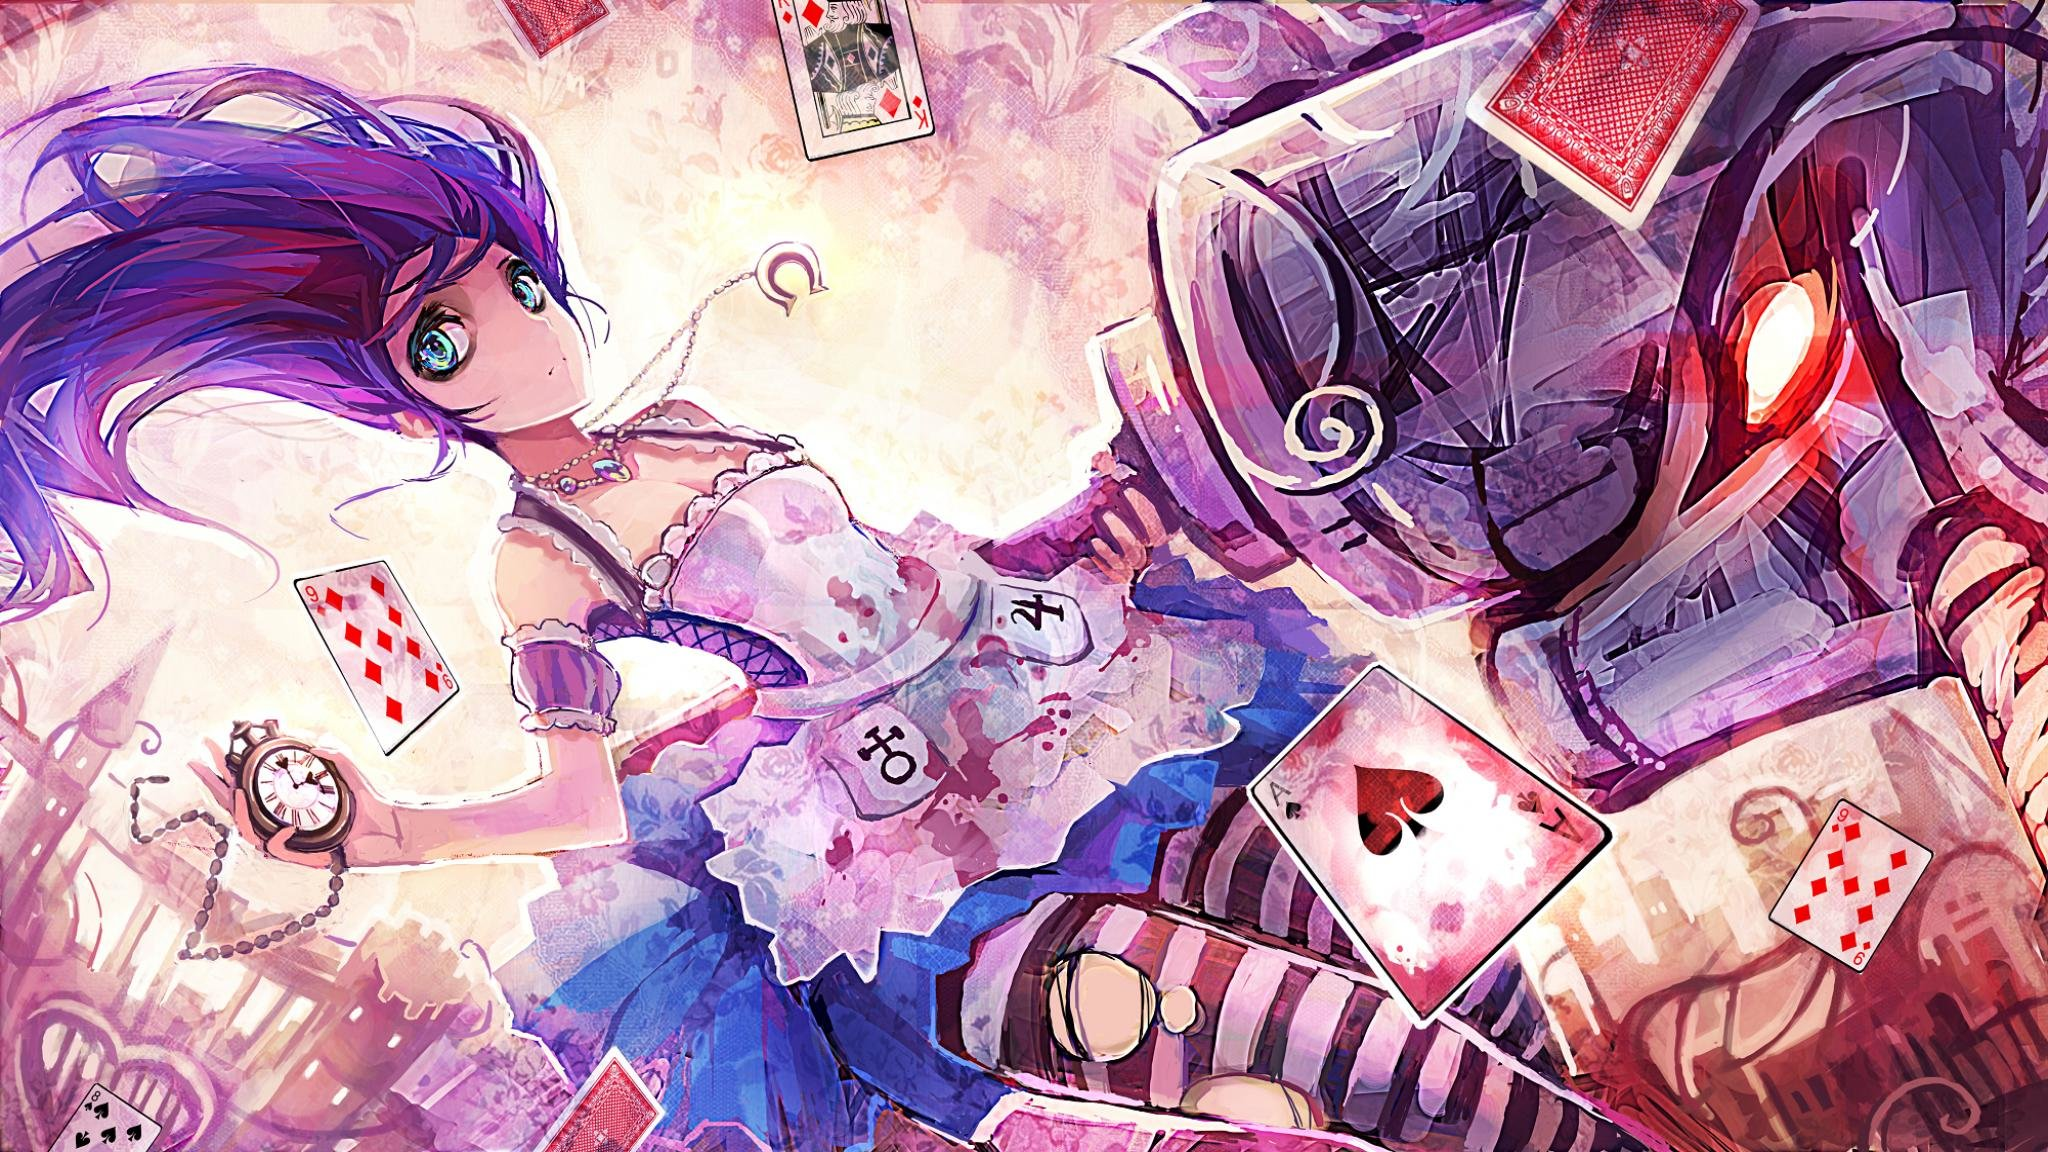 Download Hd 2048x1152 Alice In Wonderland Anime Pc